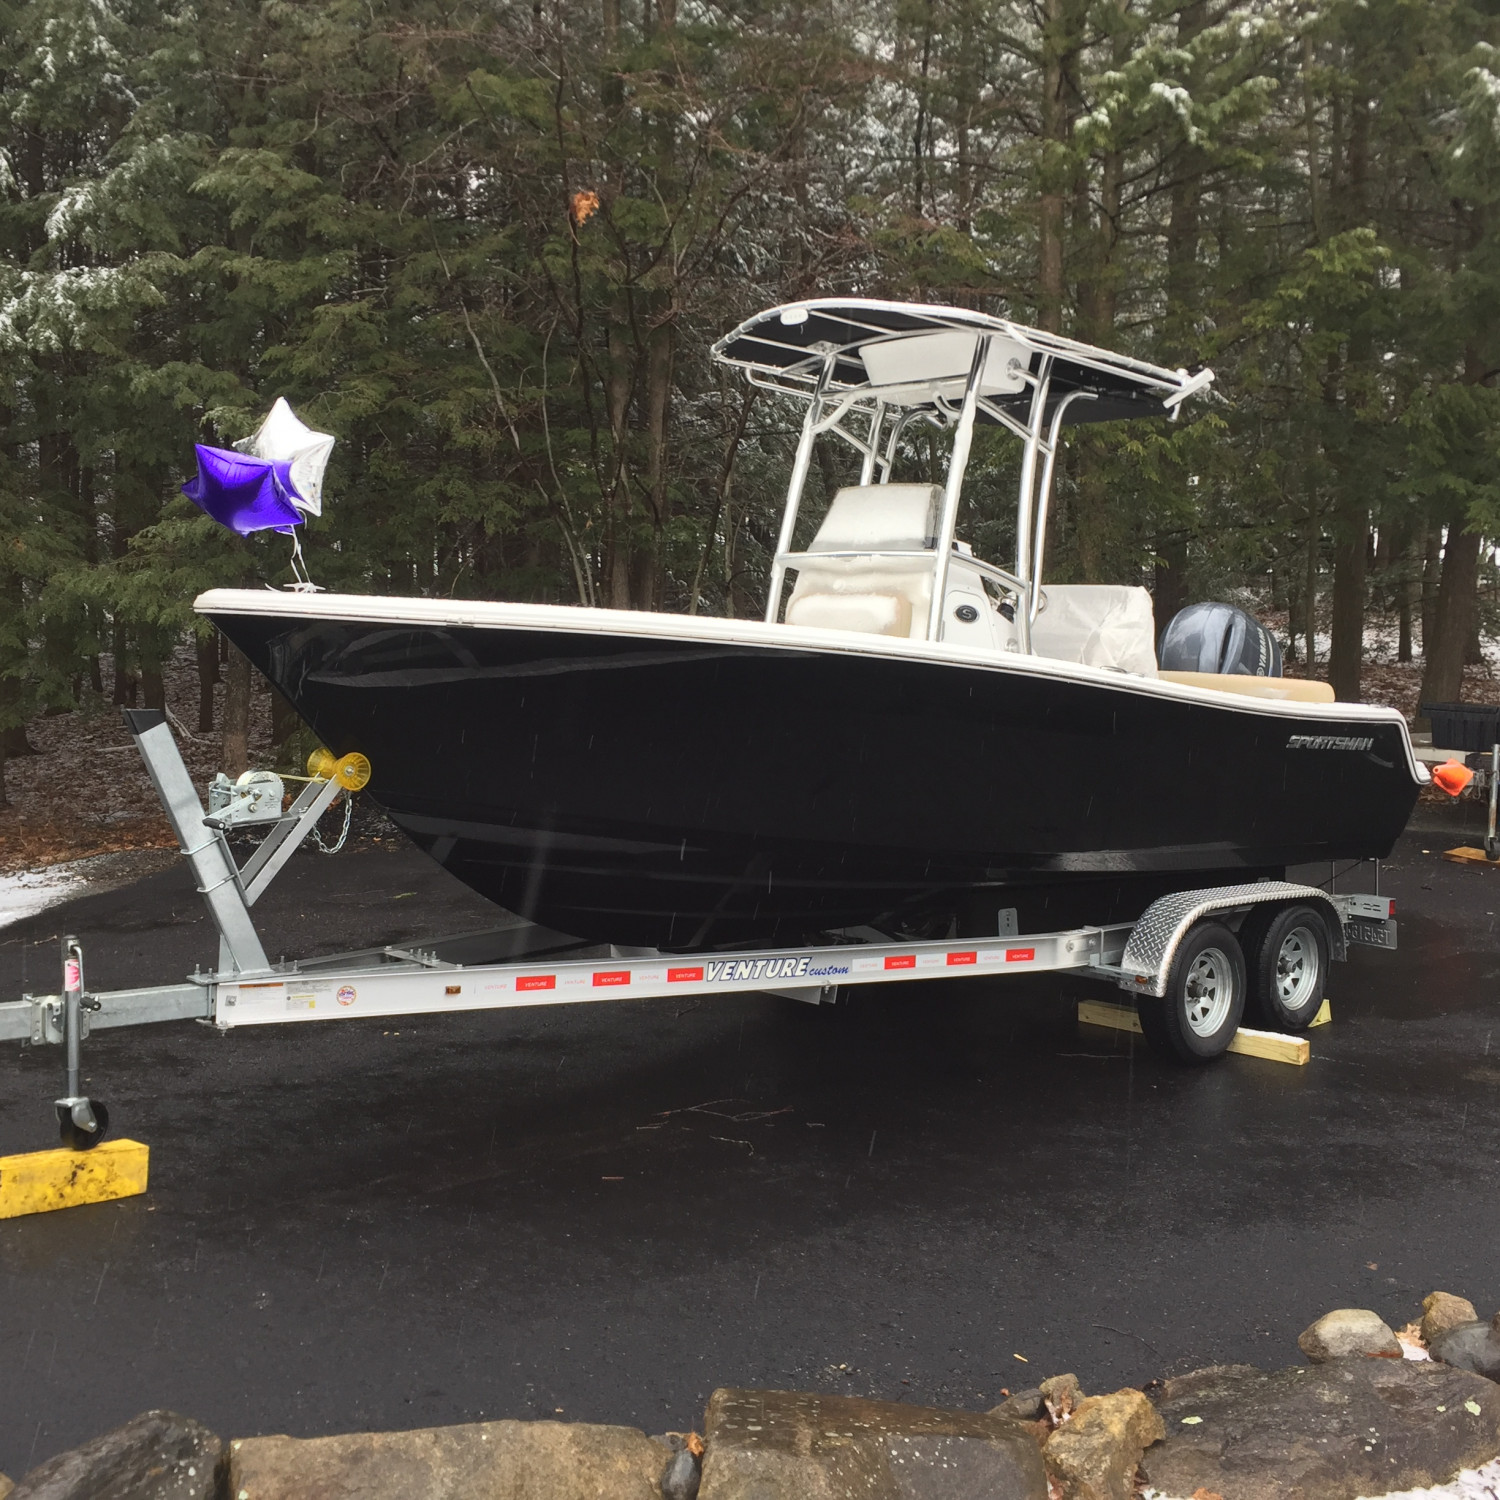 Title: Sick of snow - On board their Sportsman Heritage 211 Center Console - Location: Hudson New Hampshire. Participating in the Photo Contest #SportsmanMay2018